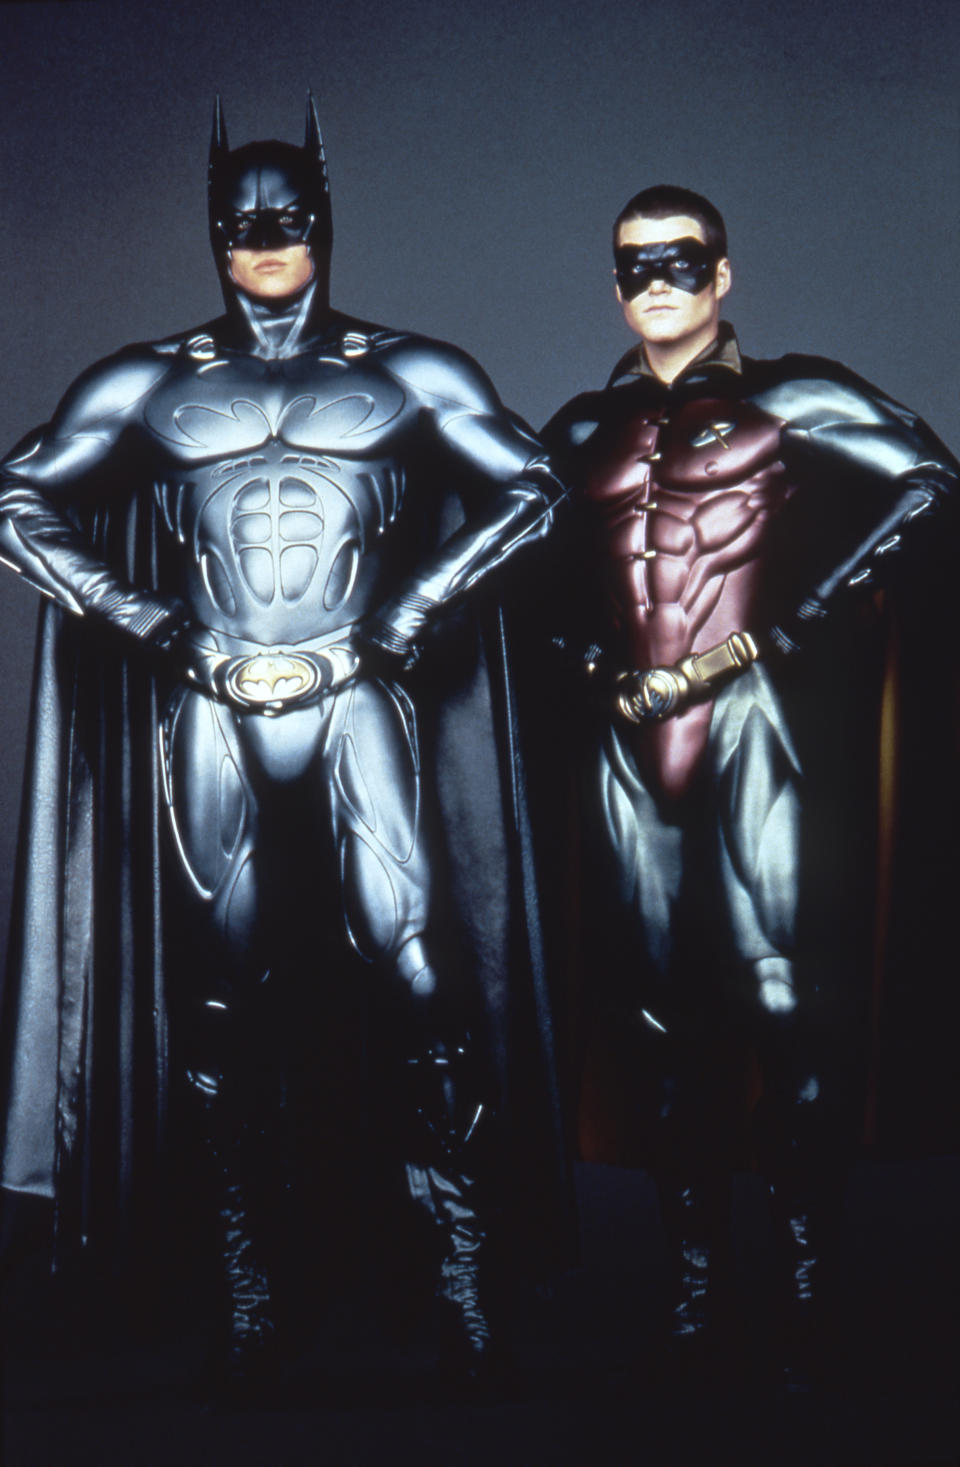 Val Kilmer and Chris O'Donnell (Photo by Warner Bros. Pictures/Sunset Boulevard/Corbis via Getty Images)